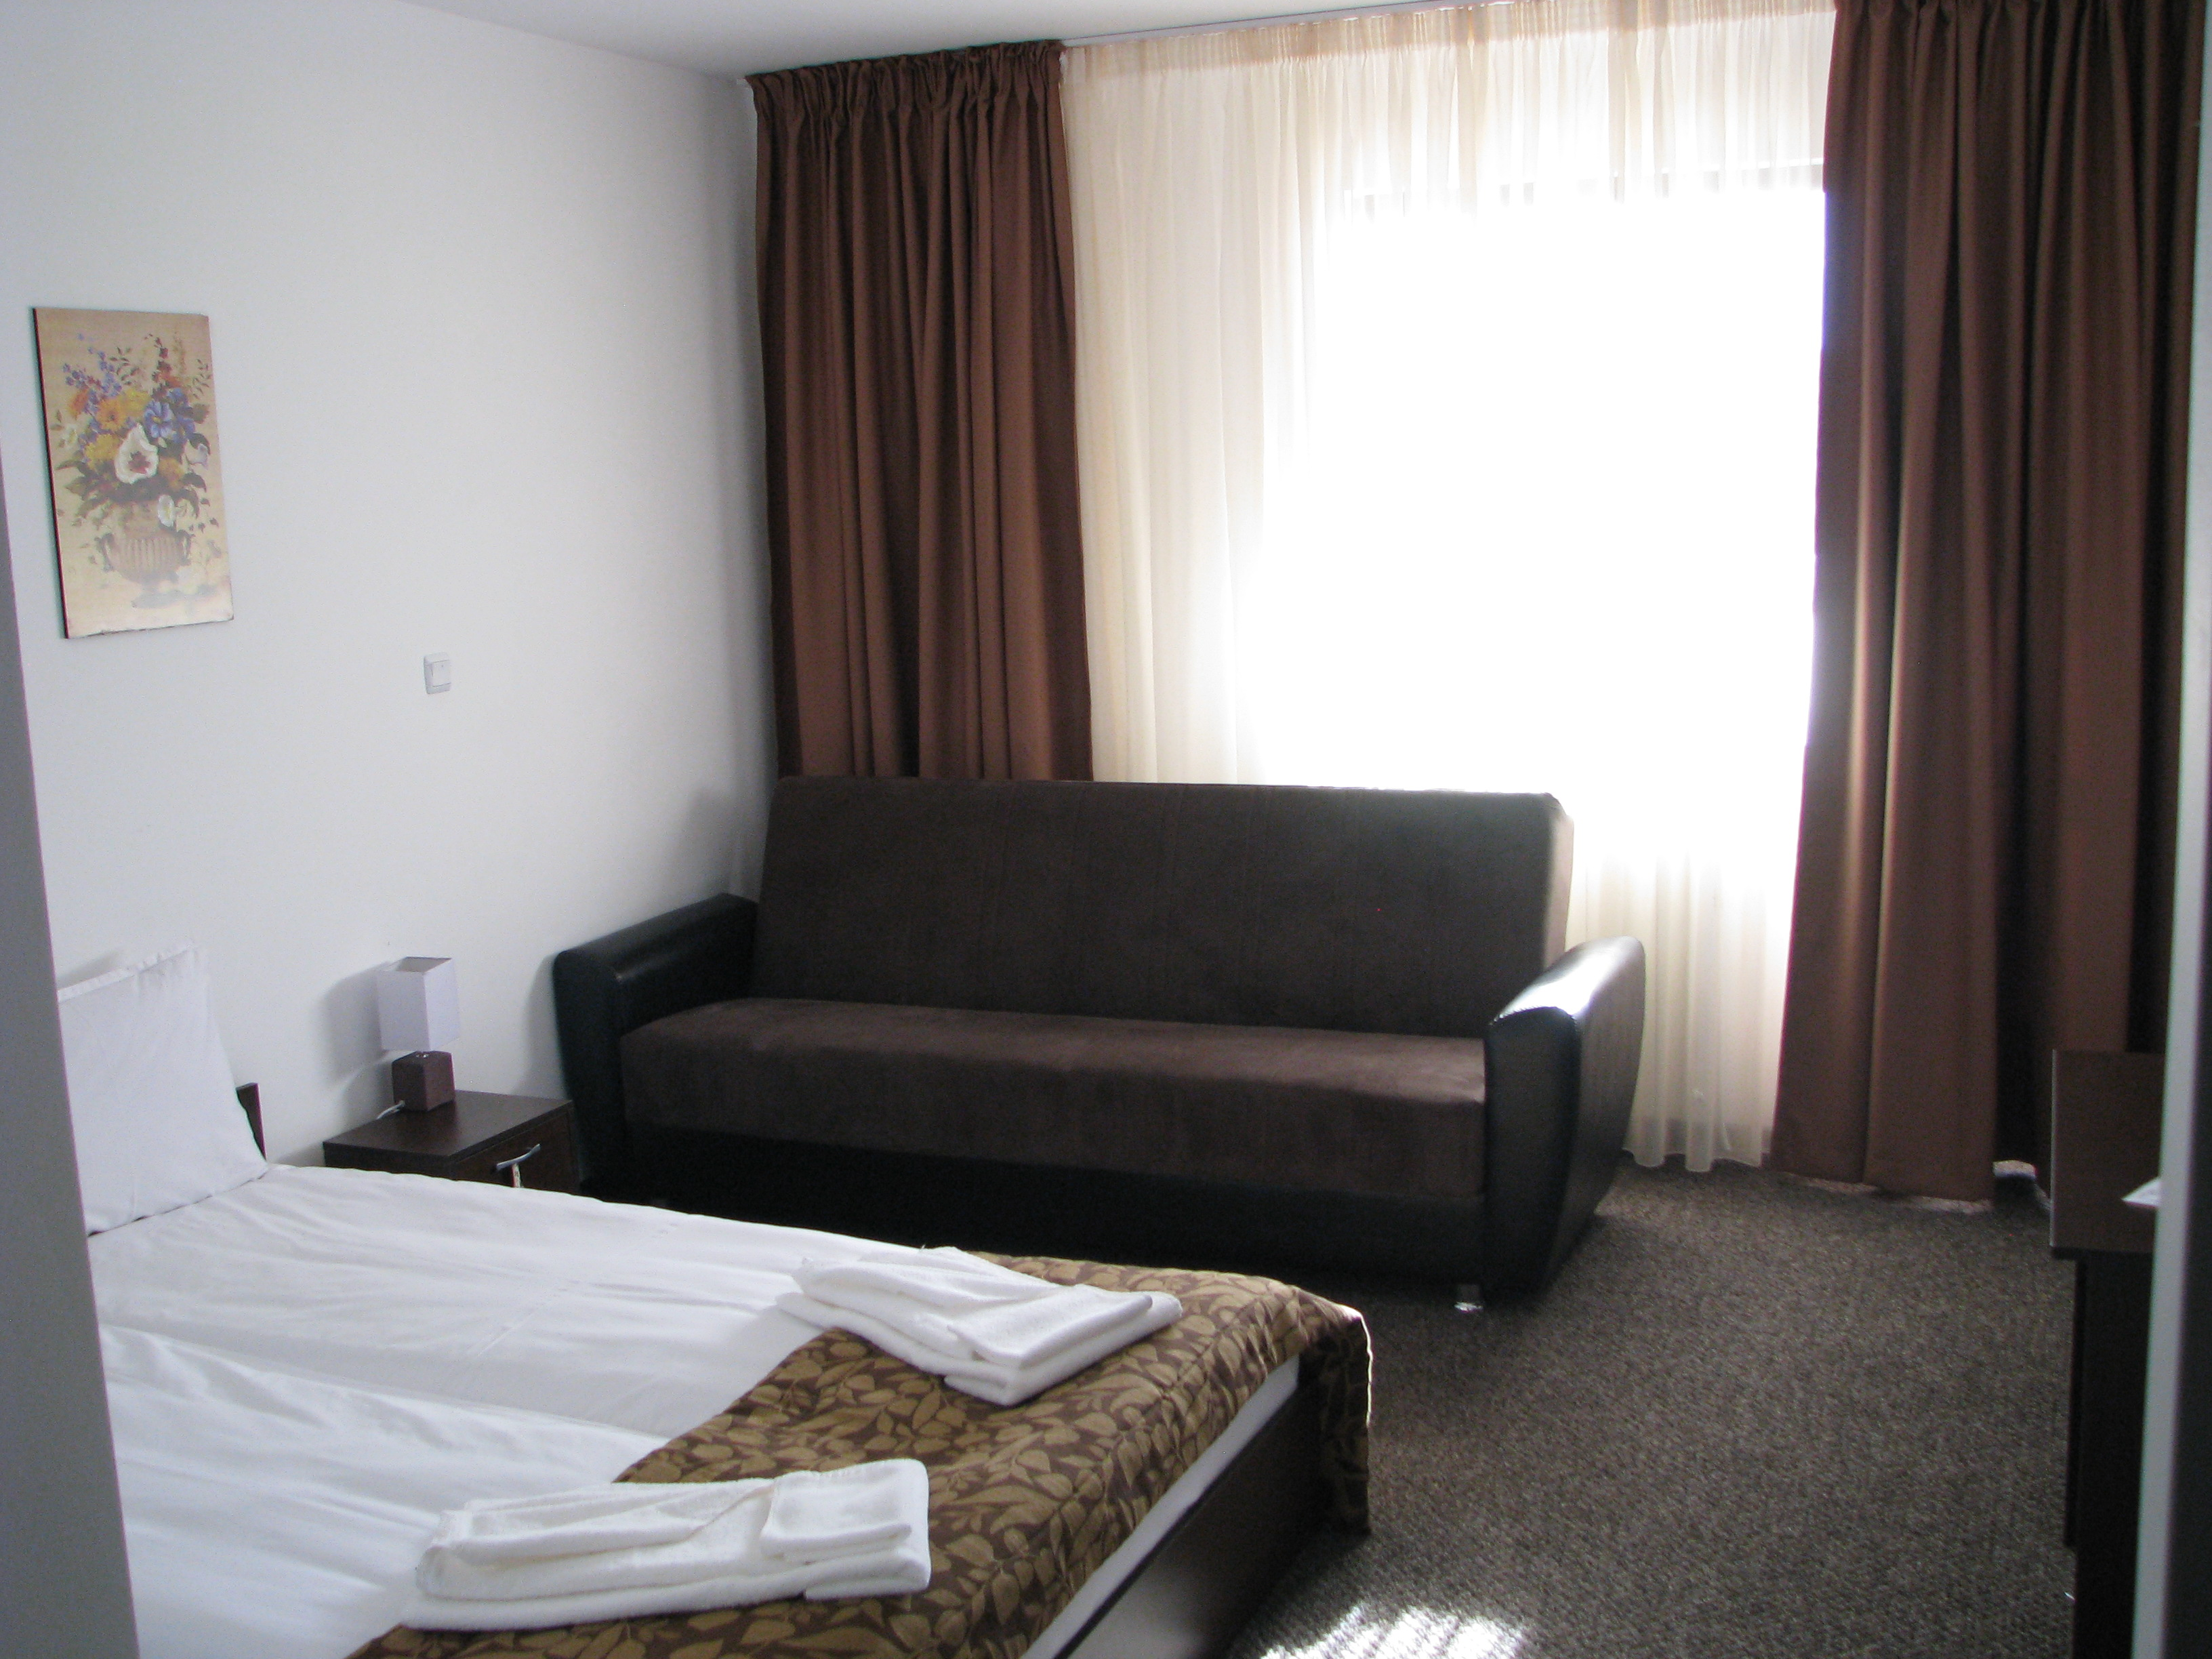 Standard double room with sofa bed park hotel orlov kamak for Sofa bed hotel